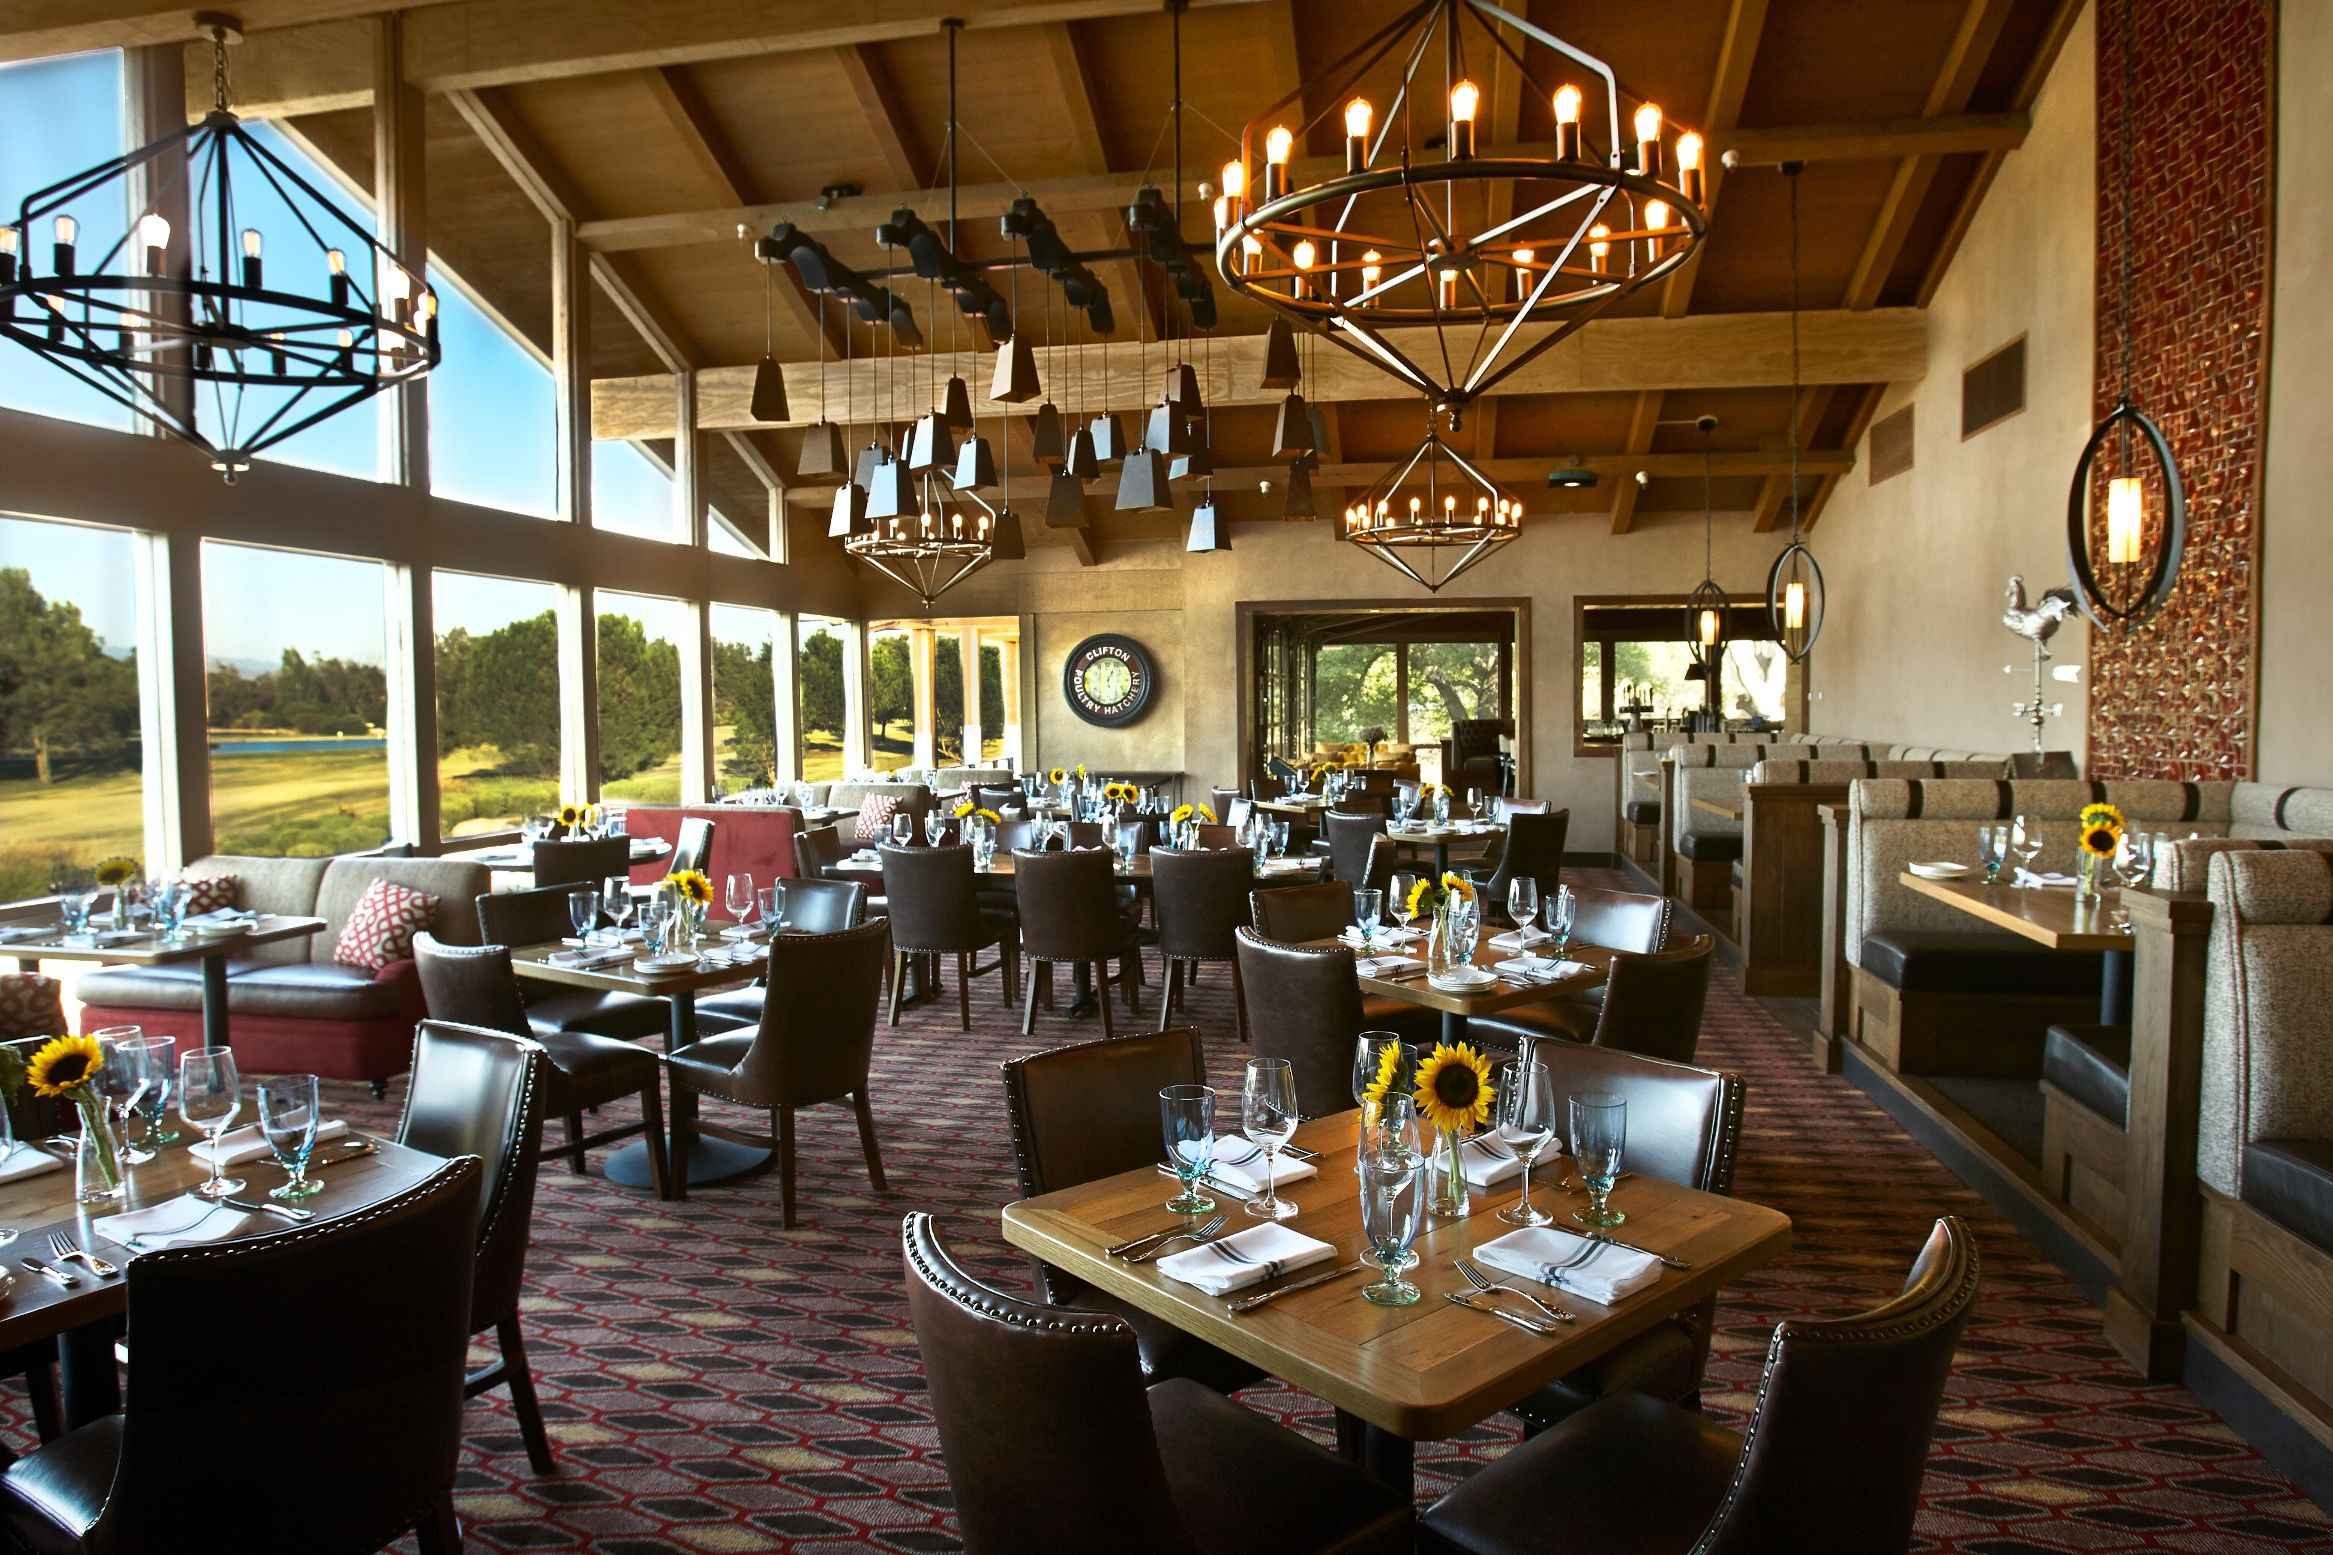 Temecula Creek Inn Cork Fire Kitchen Dining Room